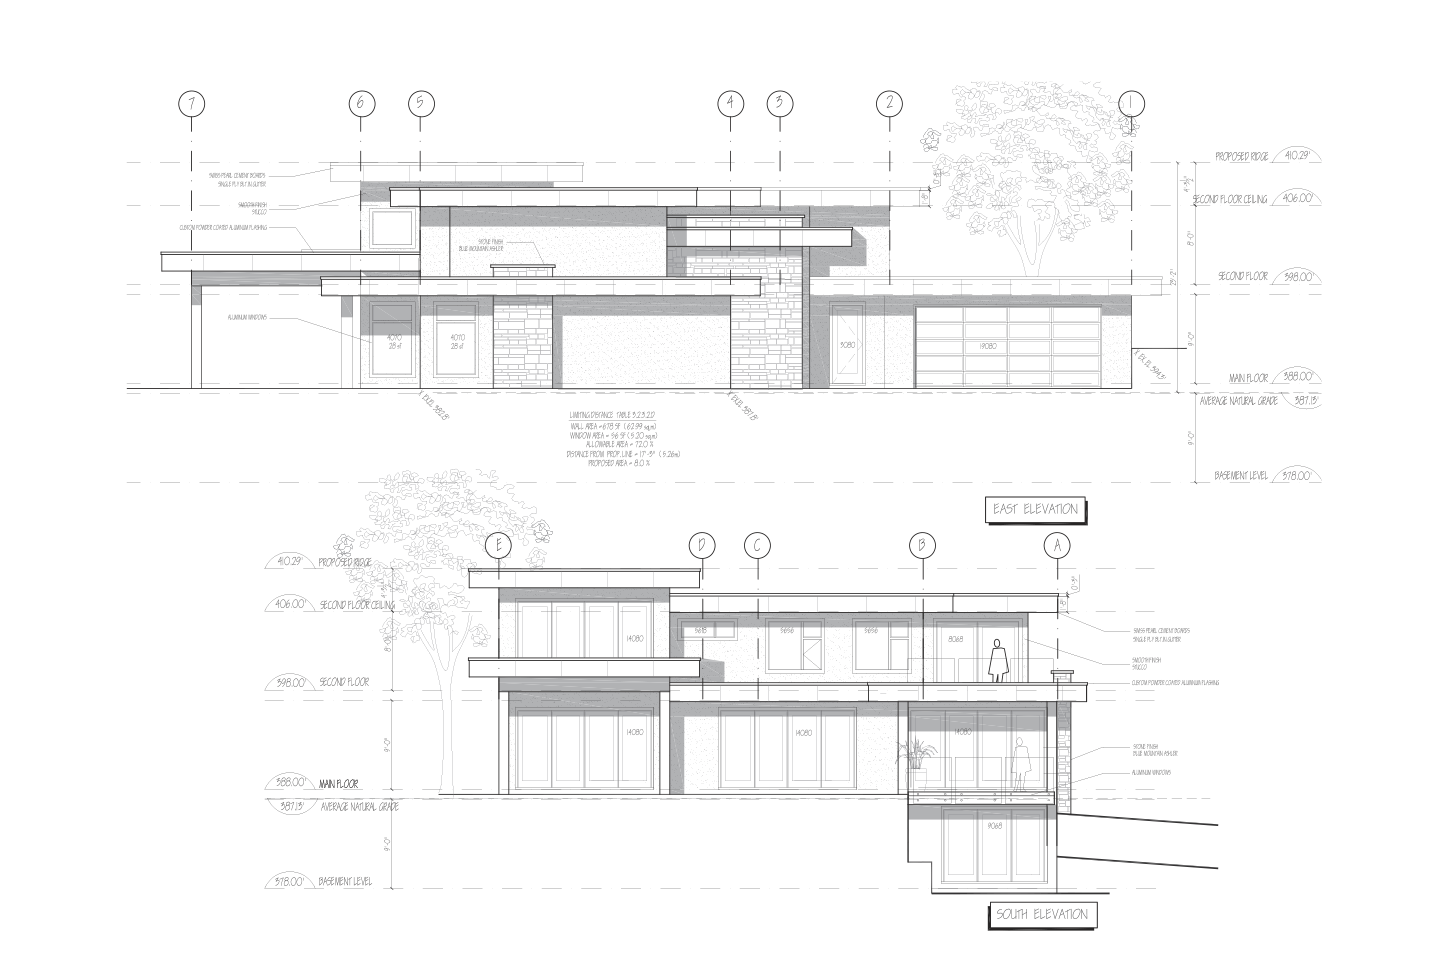 Blueprints of an upcoming design and build project in Vancouver